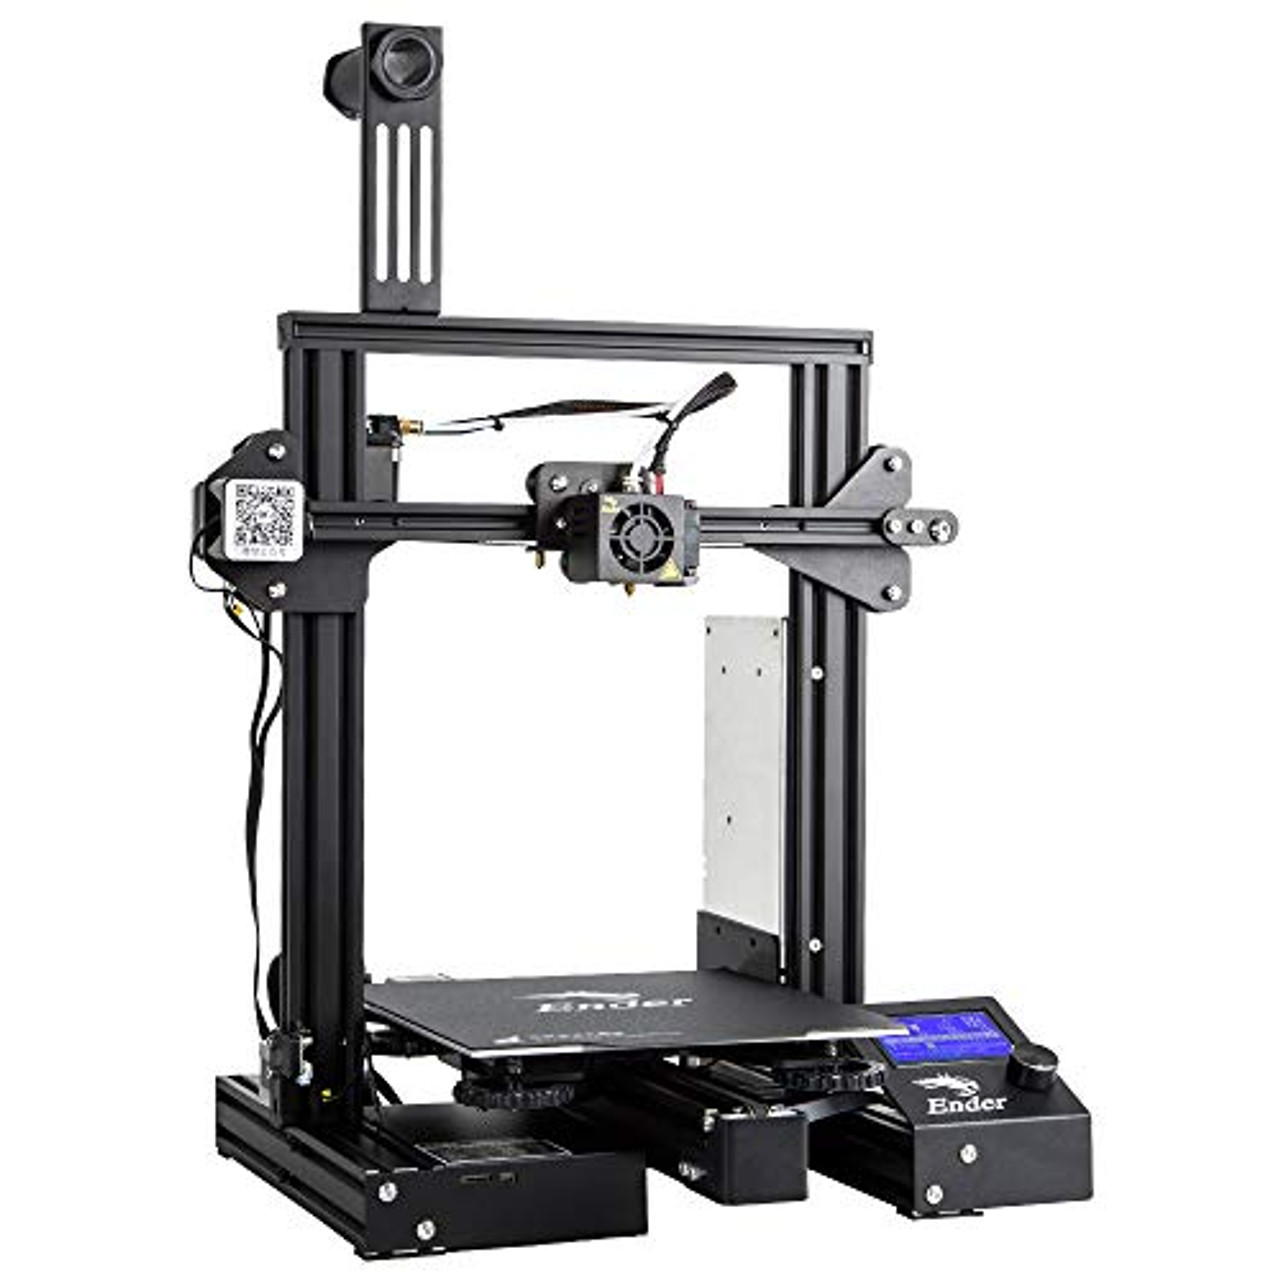 MK-10 Parent Nozzle UL Certified Power Supply 8.6 x 8.6 x 9.8 Creality 3D Printer Ender 3 Pro Upgrade Cmagnet Build Surface Plate